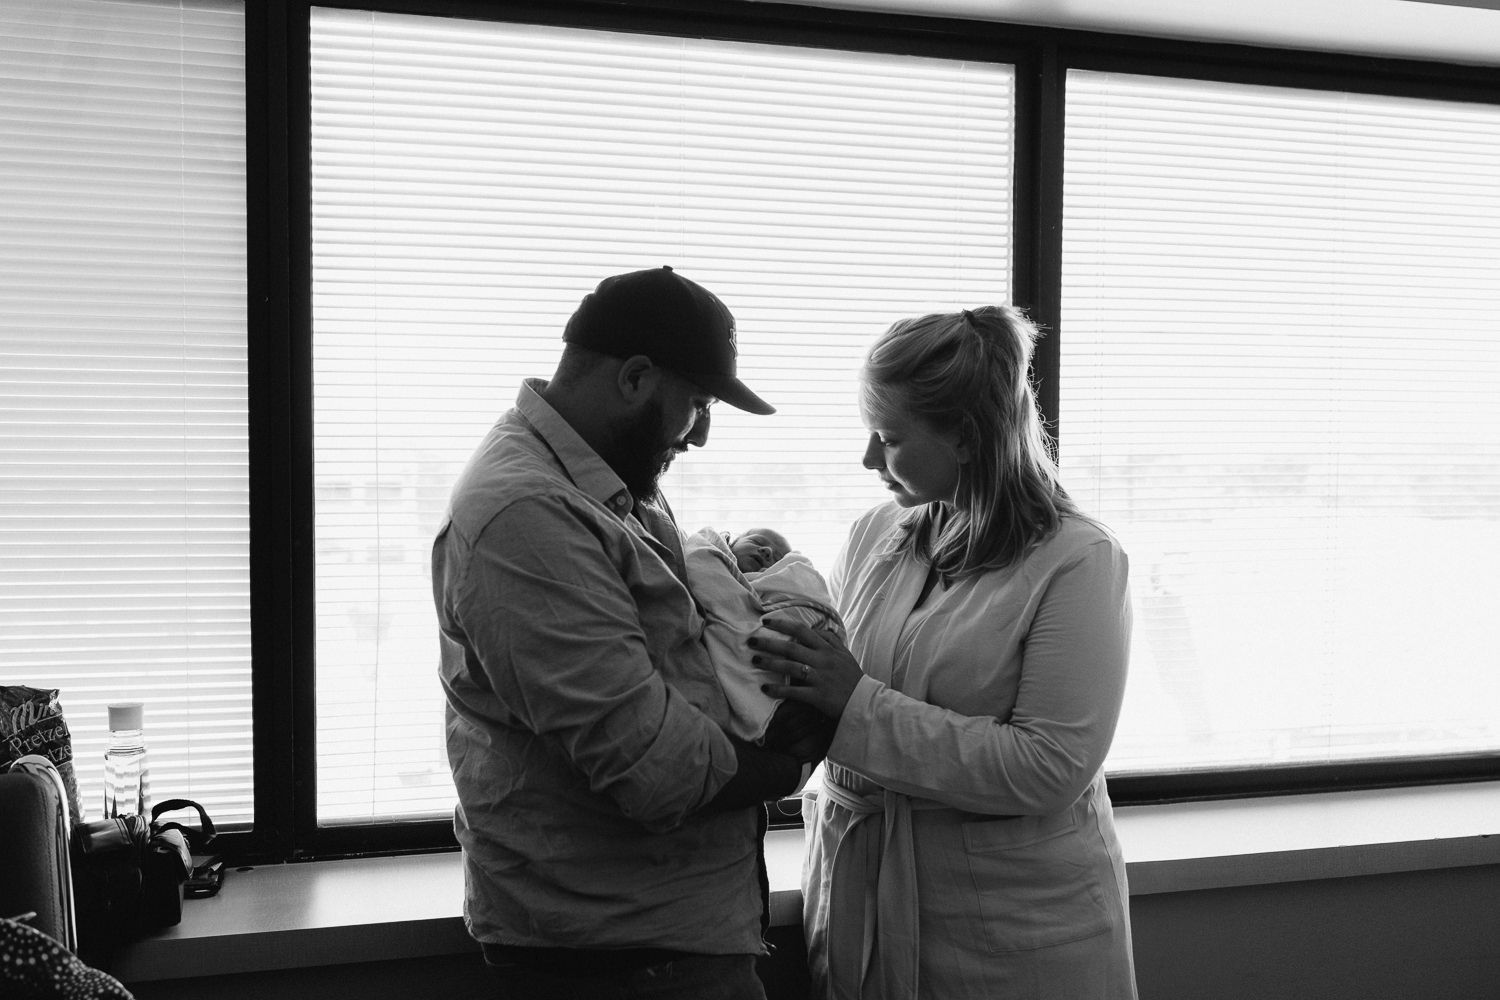 first time parents standing in hospital room holding and looking at 10 hour old baby boy - Barrie Fresh 48 Photos